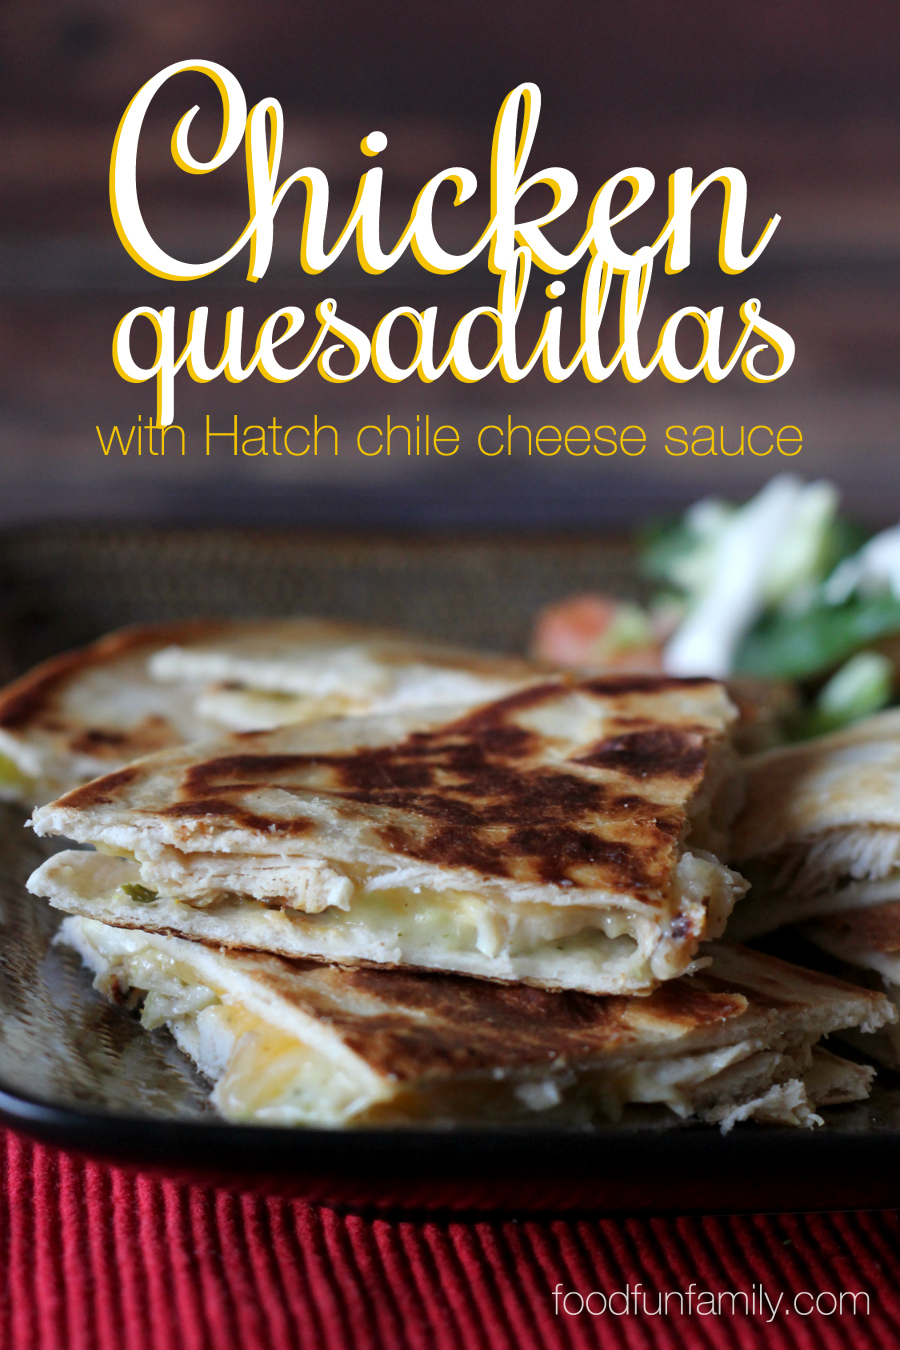 This easy 15-minute recipe for chicken quesadillas with hatch green chile cheese sauce takes basic quesadillas to a whole new level. Quick meals don't have to be boring! You are going to LOVE this sauce!